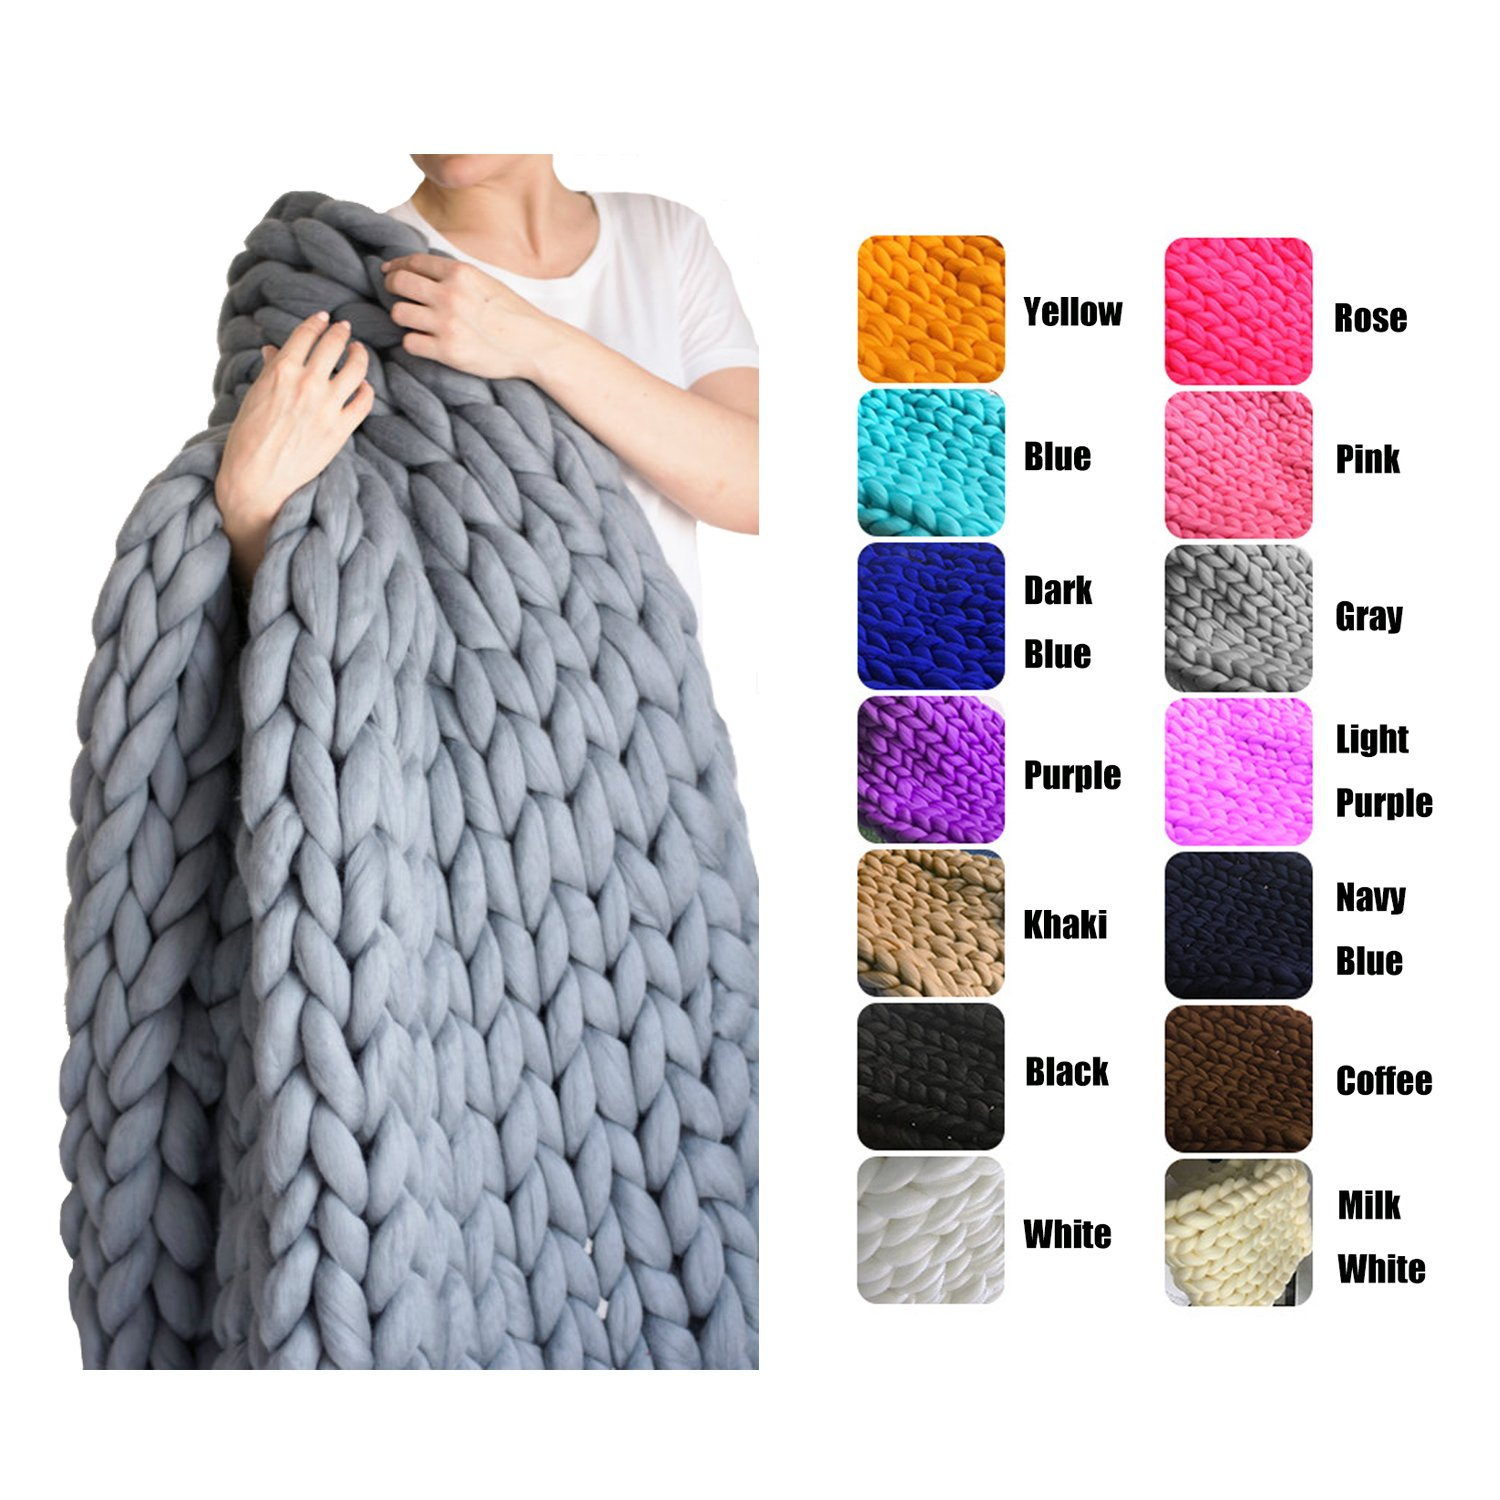 EASTSURE Bulky Knit Throw Chunky Sofa Blanket Hand-made Super Large Pet Bed Chair Mat Rug Grey 40''x79'' by EASTSURE (Image #1)